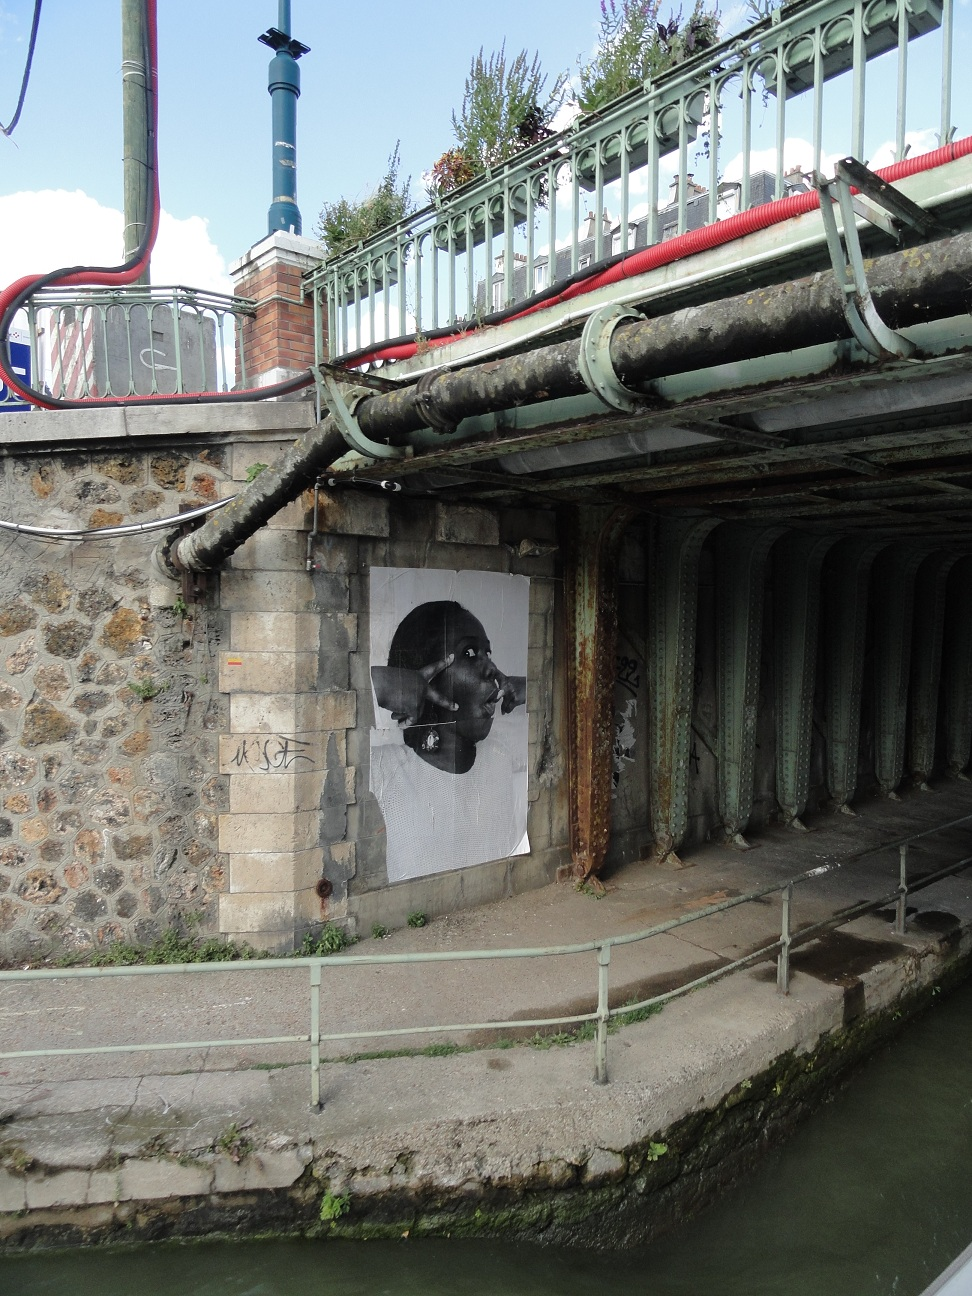 Projet Inside Out de JR le long du canal de l'Ourcq - Pantin